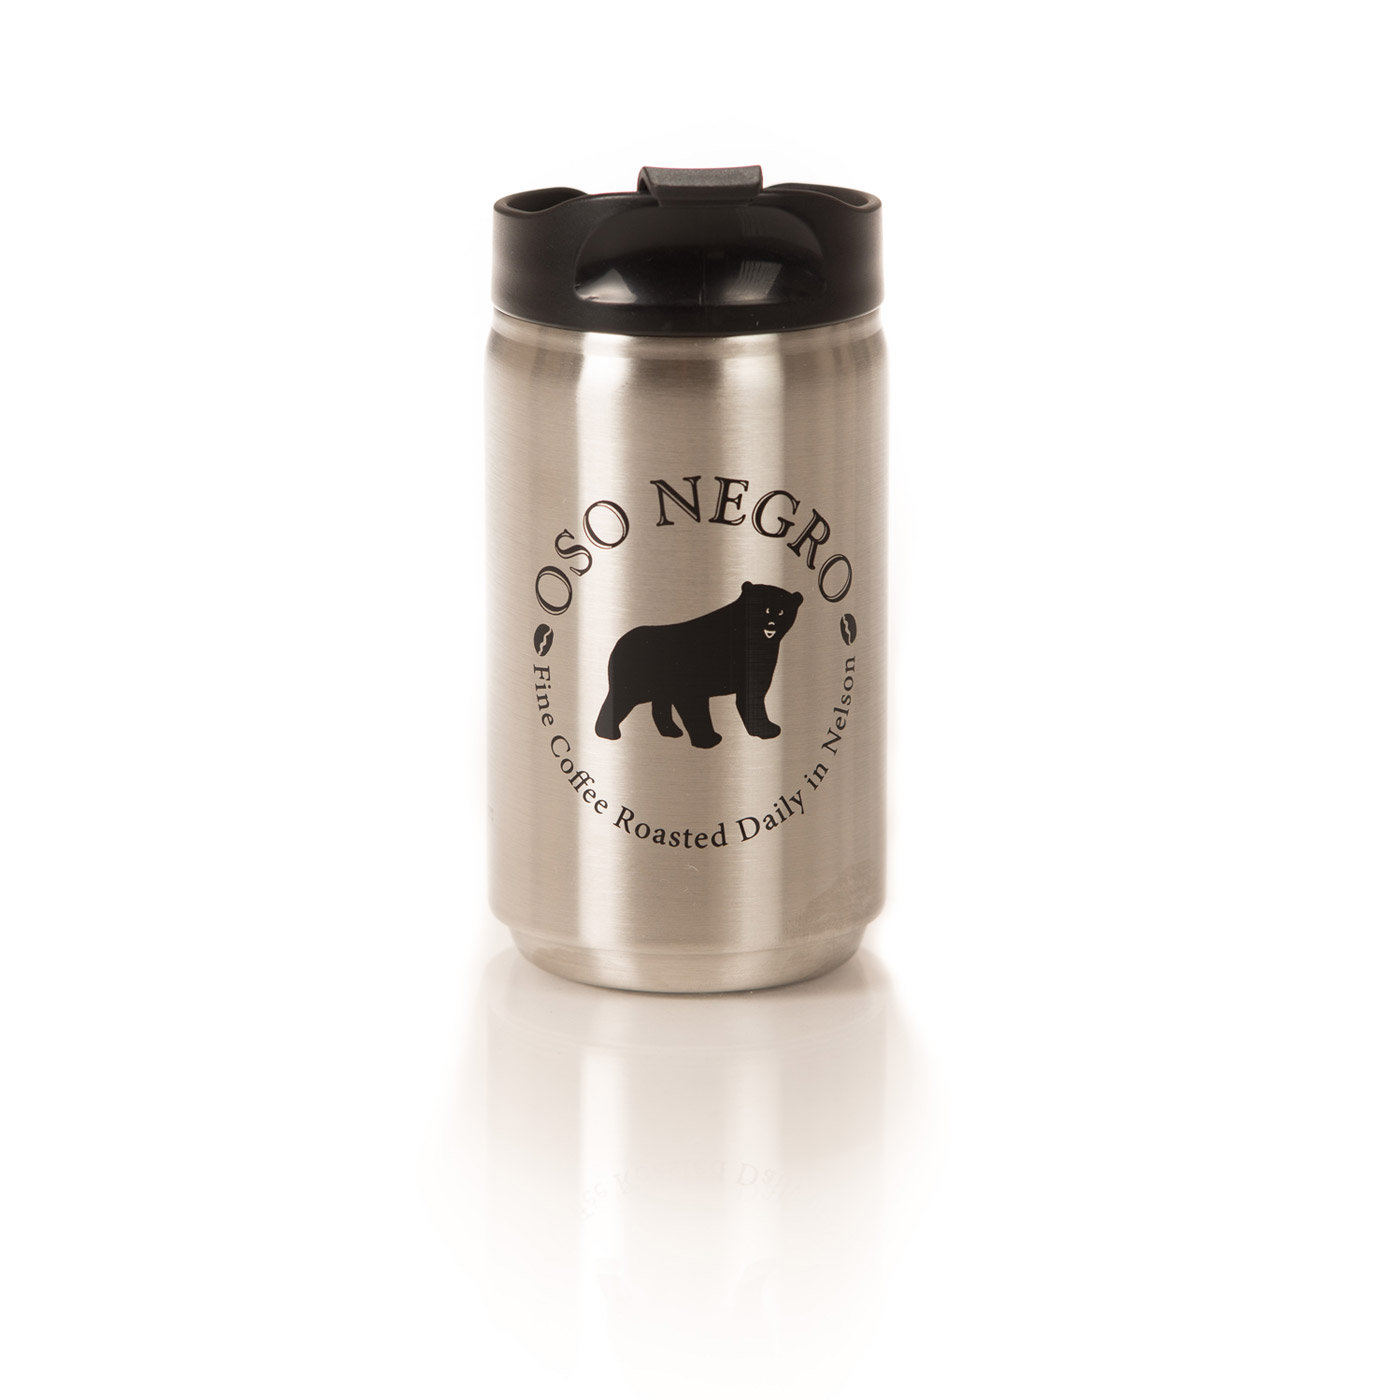 8 Oz Travel Mug Oso Negro